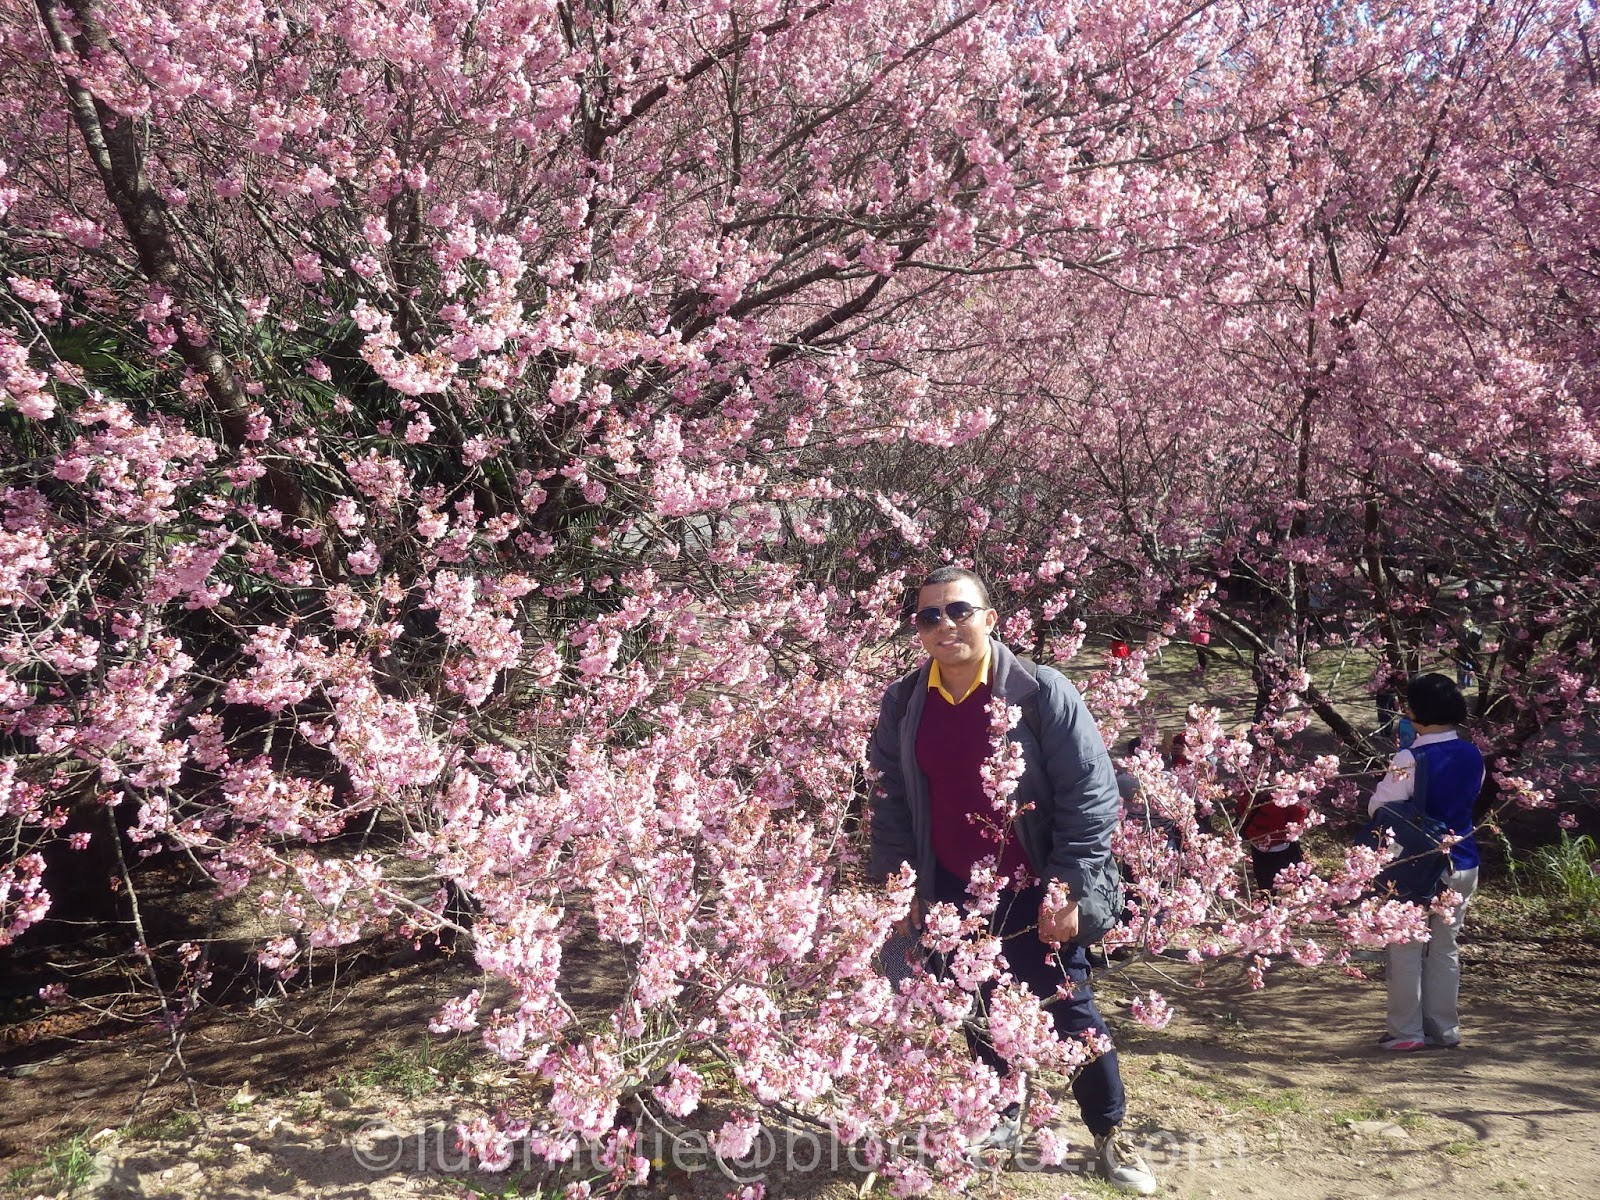 Taiwan Cherry Blossoms 2020 Ultimate Travel Guide: When